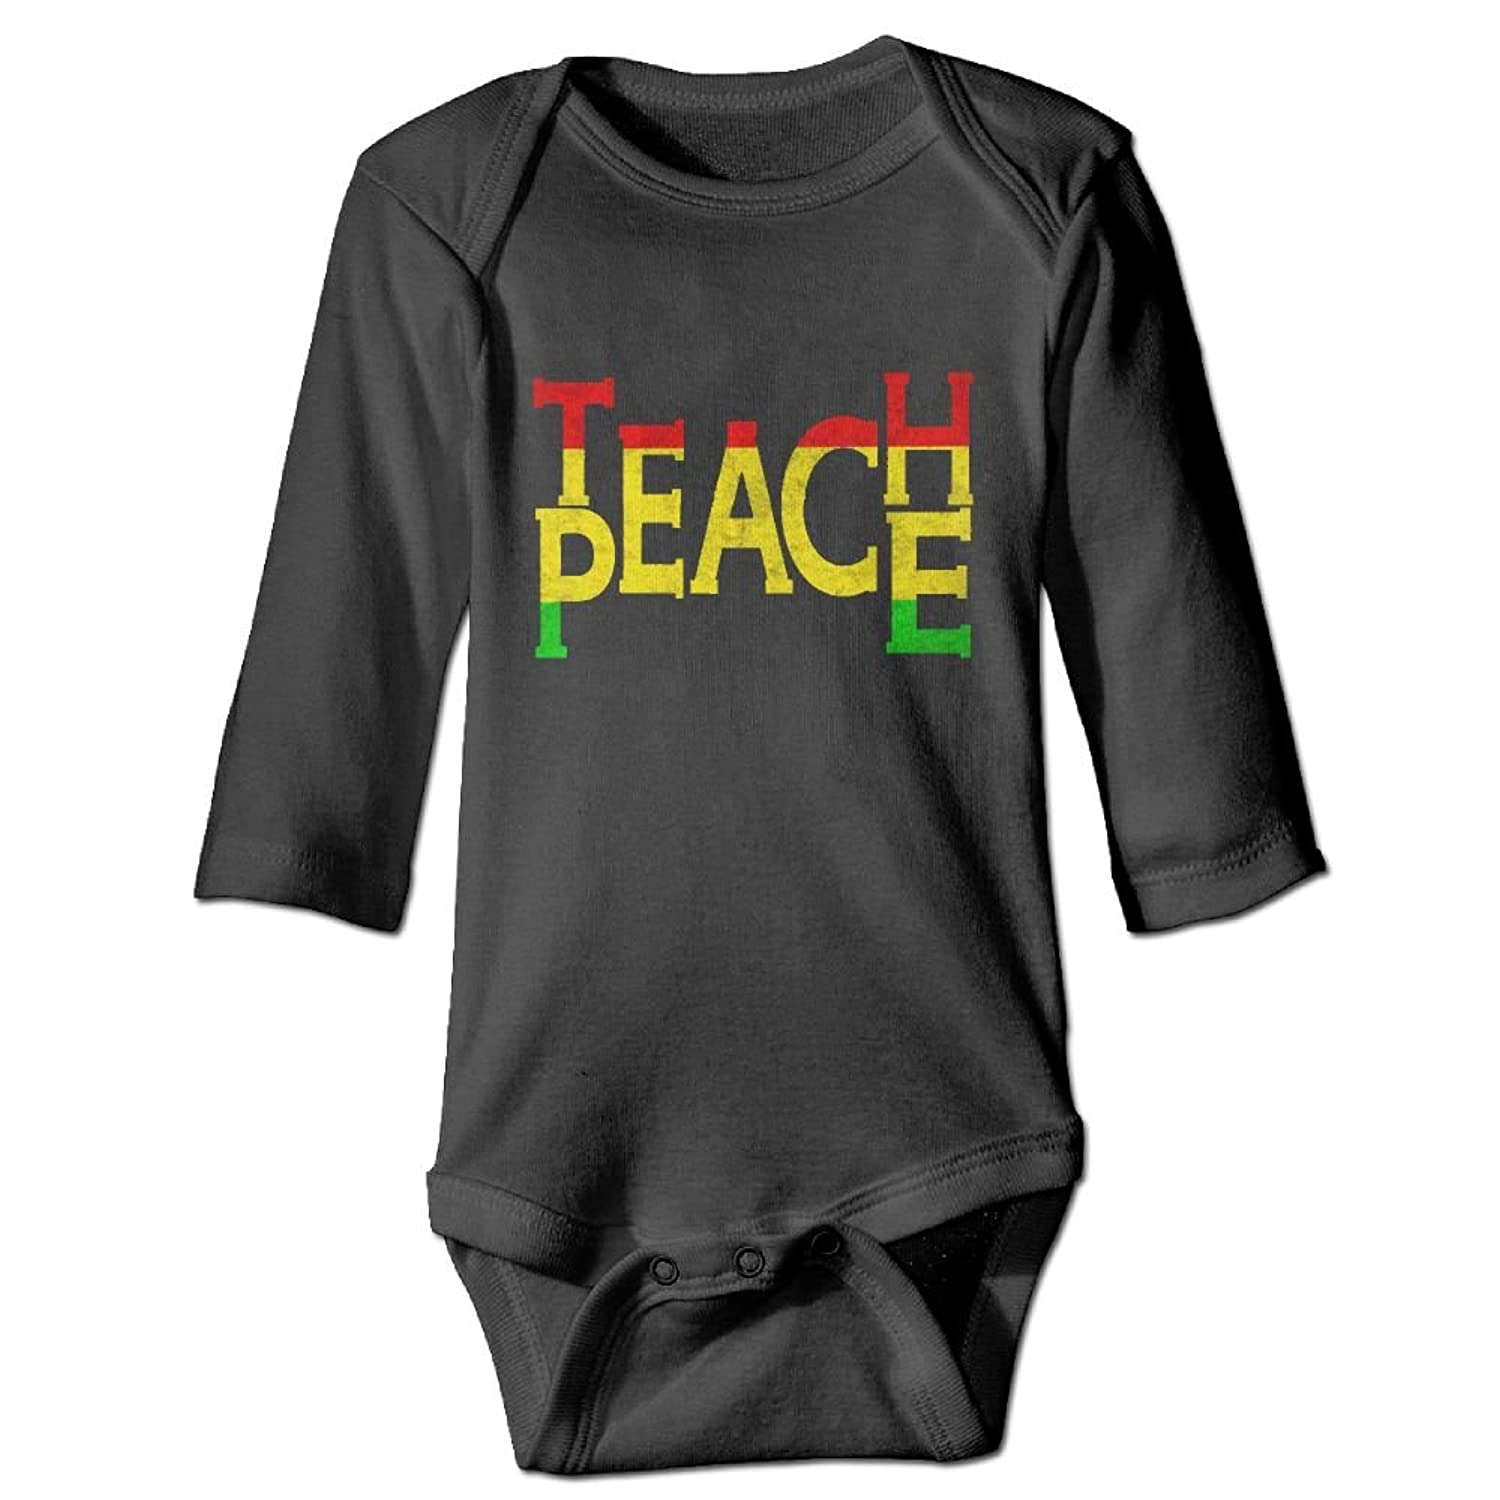 efadf74e0 BabyPower Baby Boy Girl Romper Teach Peace Rasta Print Jumpsuit Long Sleeves  Outfits Bodysuit